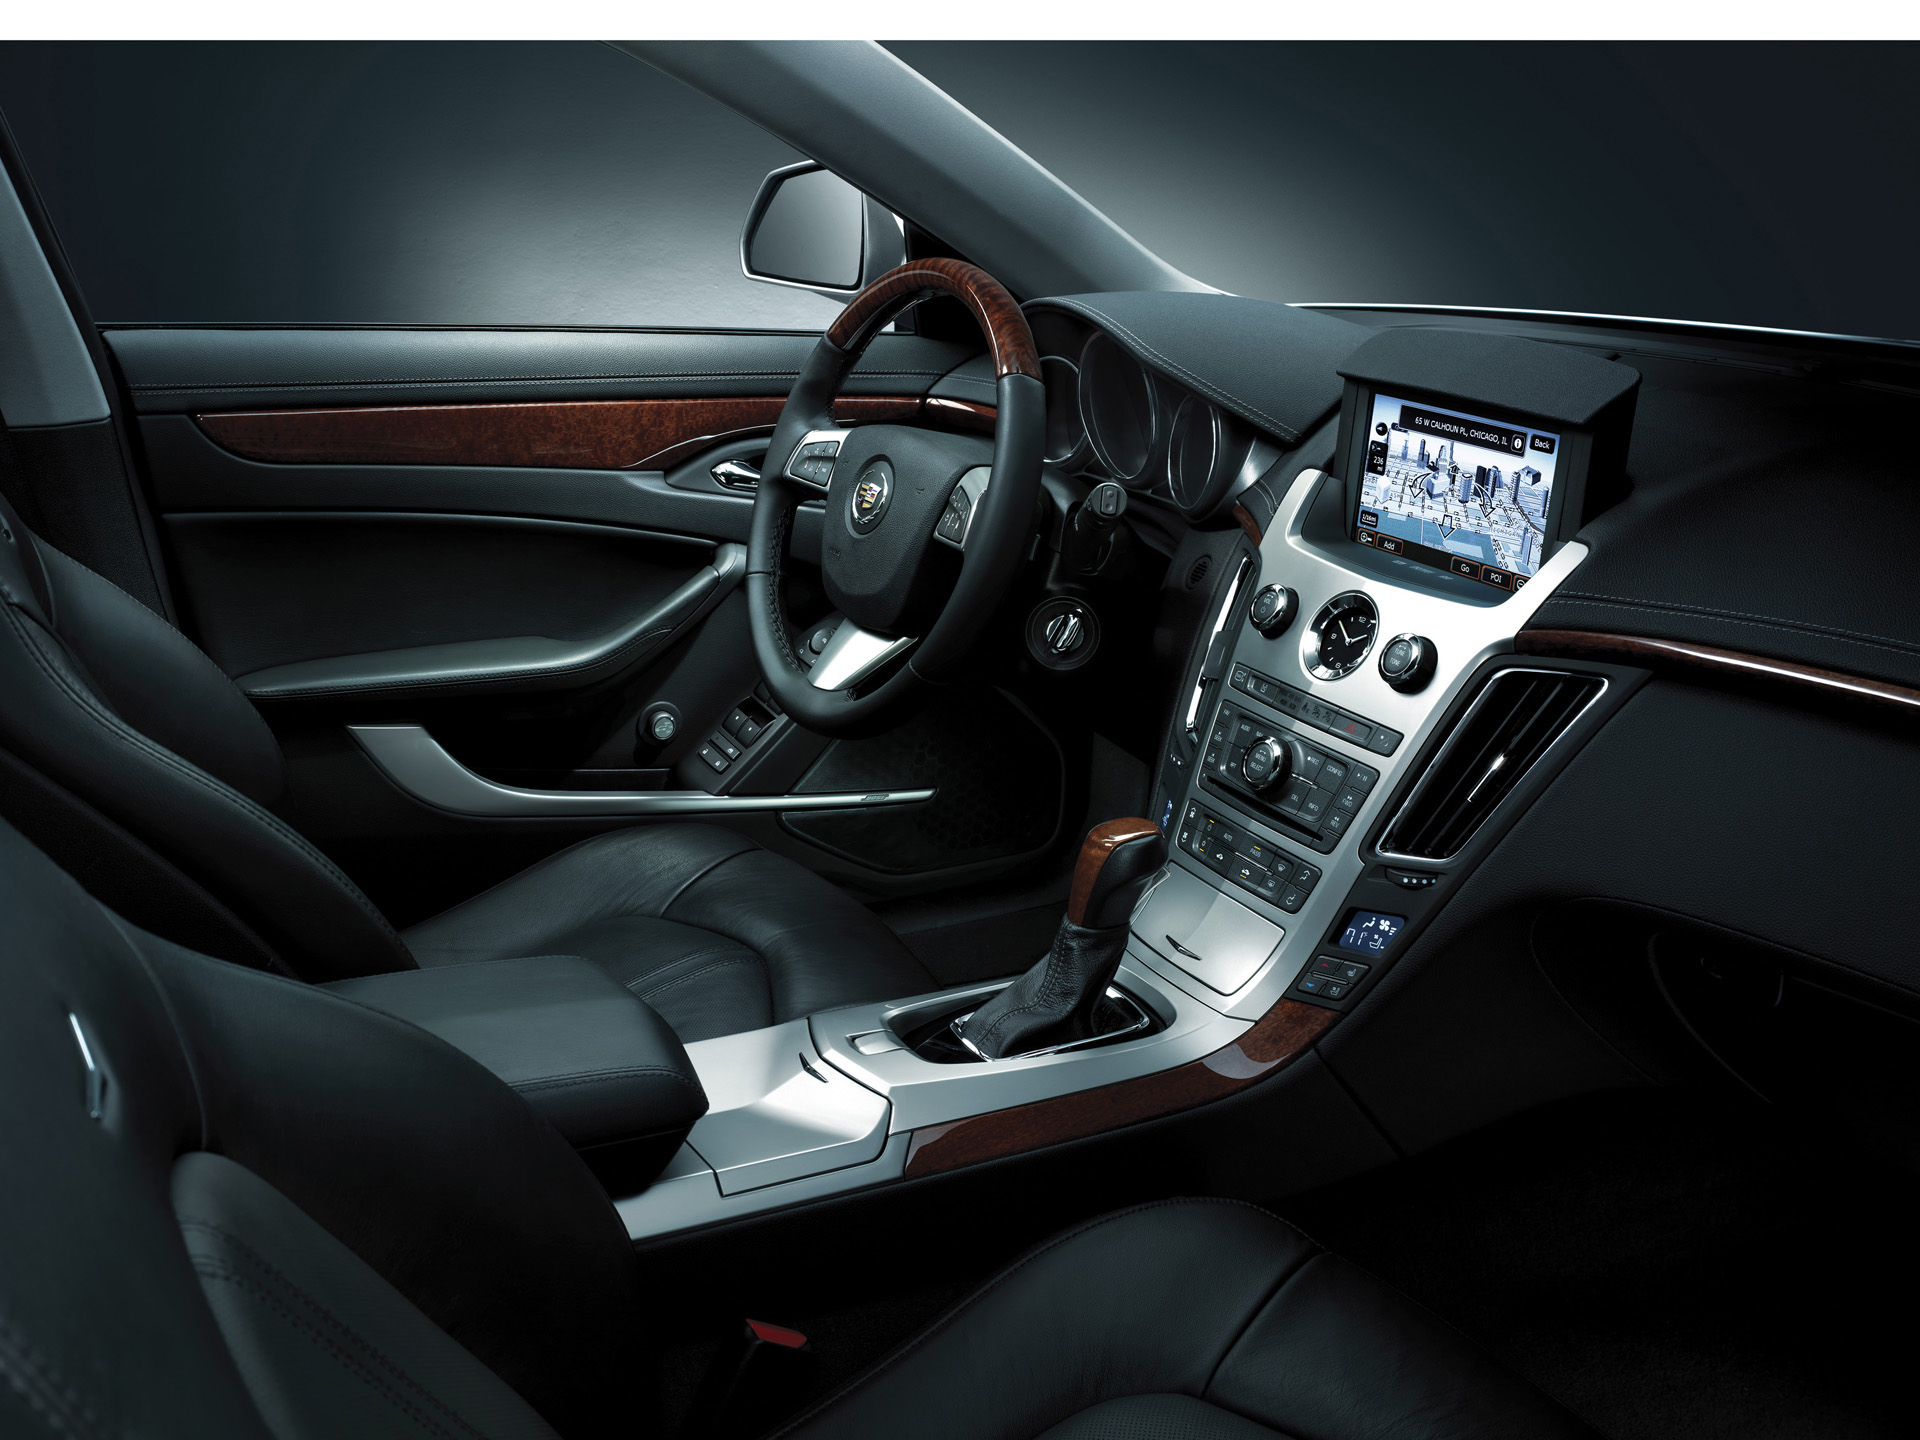 2013 Cadillac Cts Coupe >> 1920x1440 2013 Cadillac Cts Coupe Interior Desktop Pc And